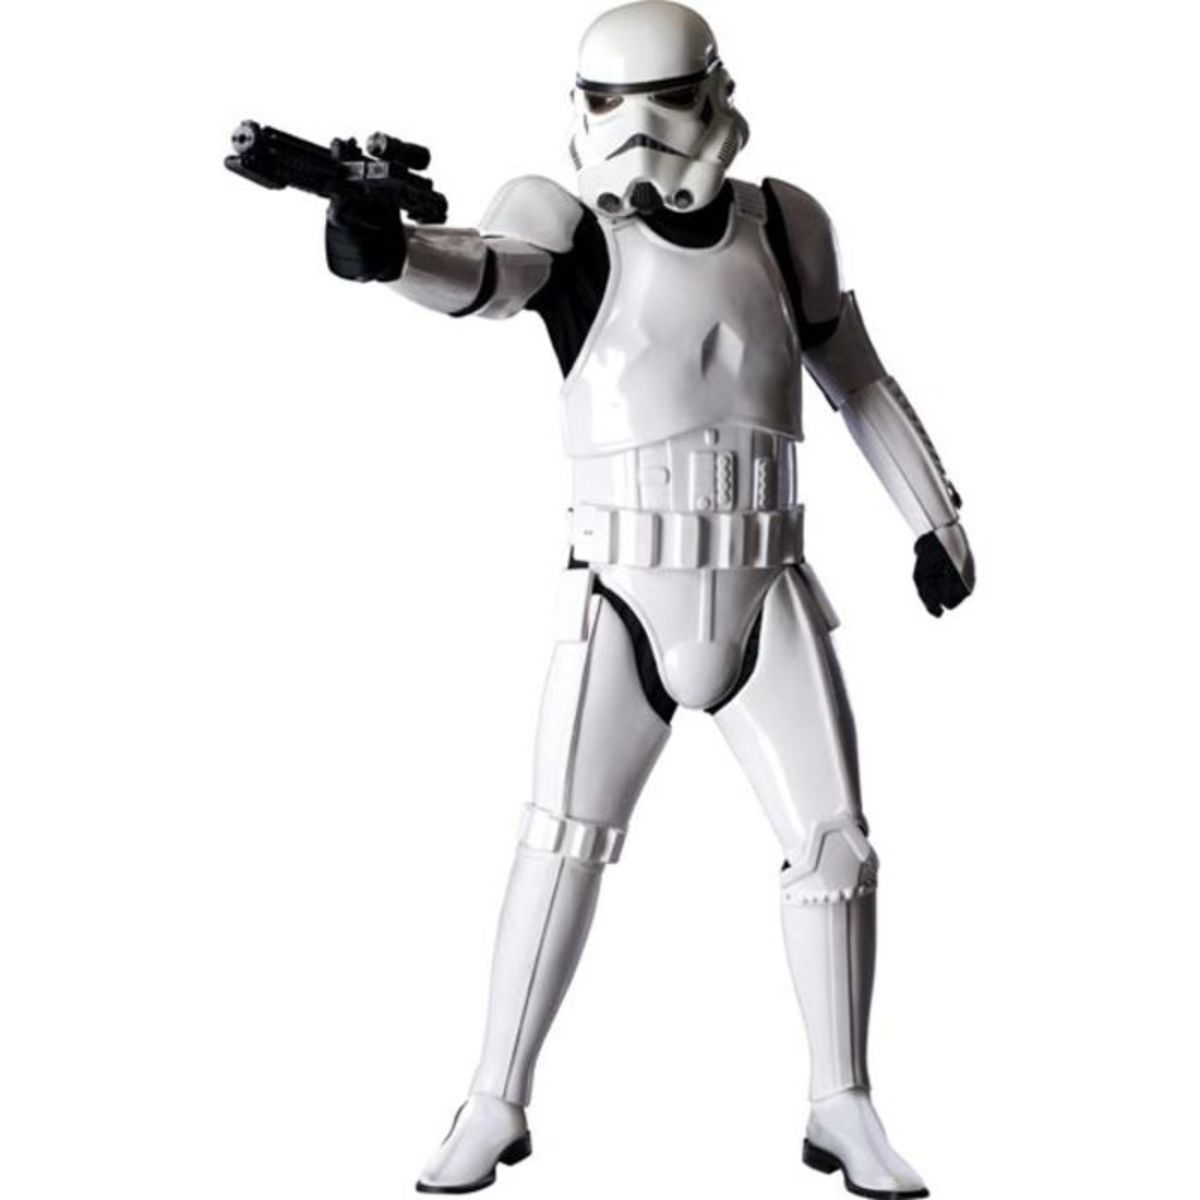 Headline for Top 5 Star Wars Costumes of 2014 - Official Costumes